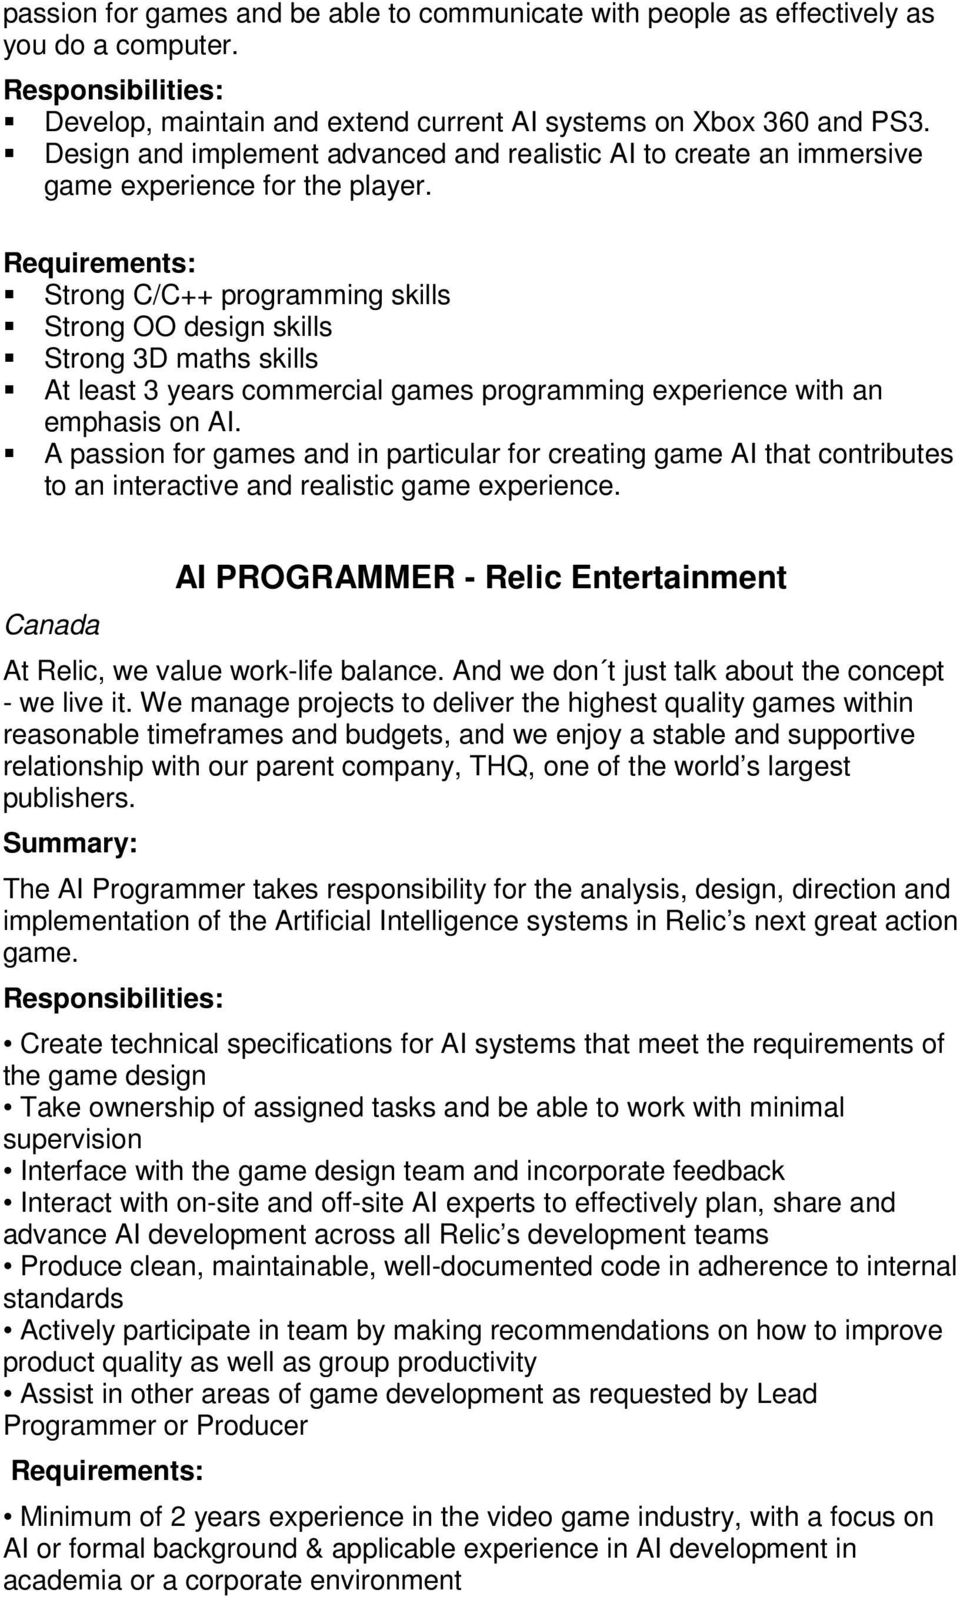 Requirements: Strong C/C++ programming skills Strong OO design skills Strong 3D maths skills At least 3 years commercial games programming experience with an emphasis on AI.